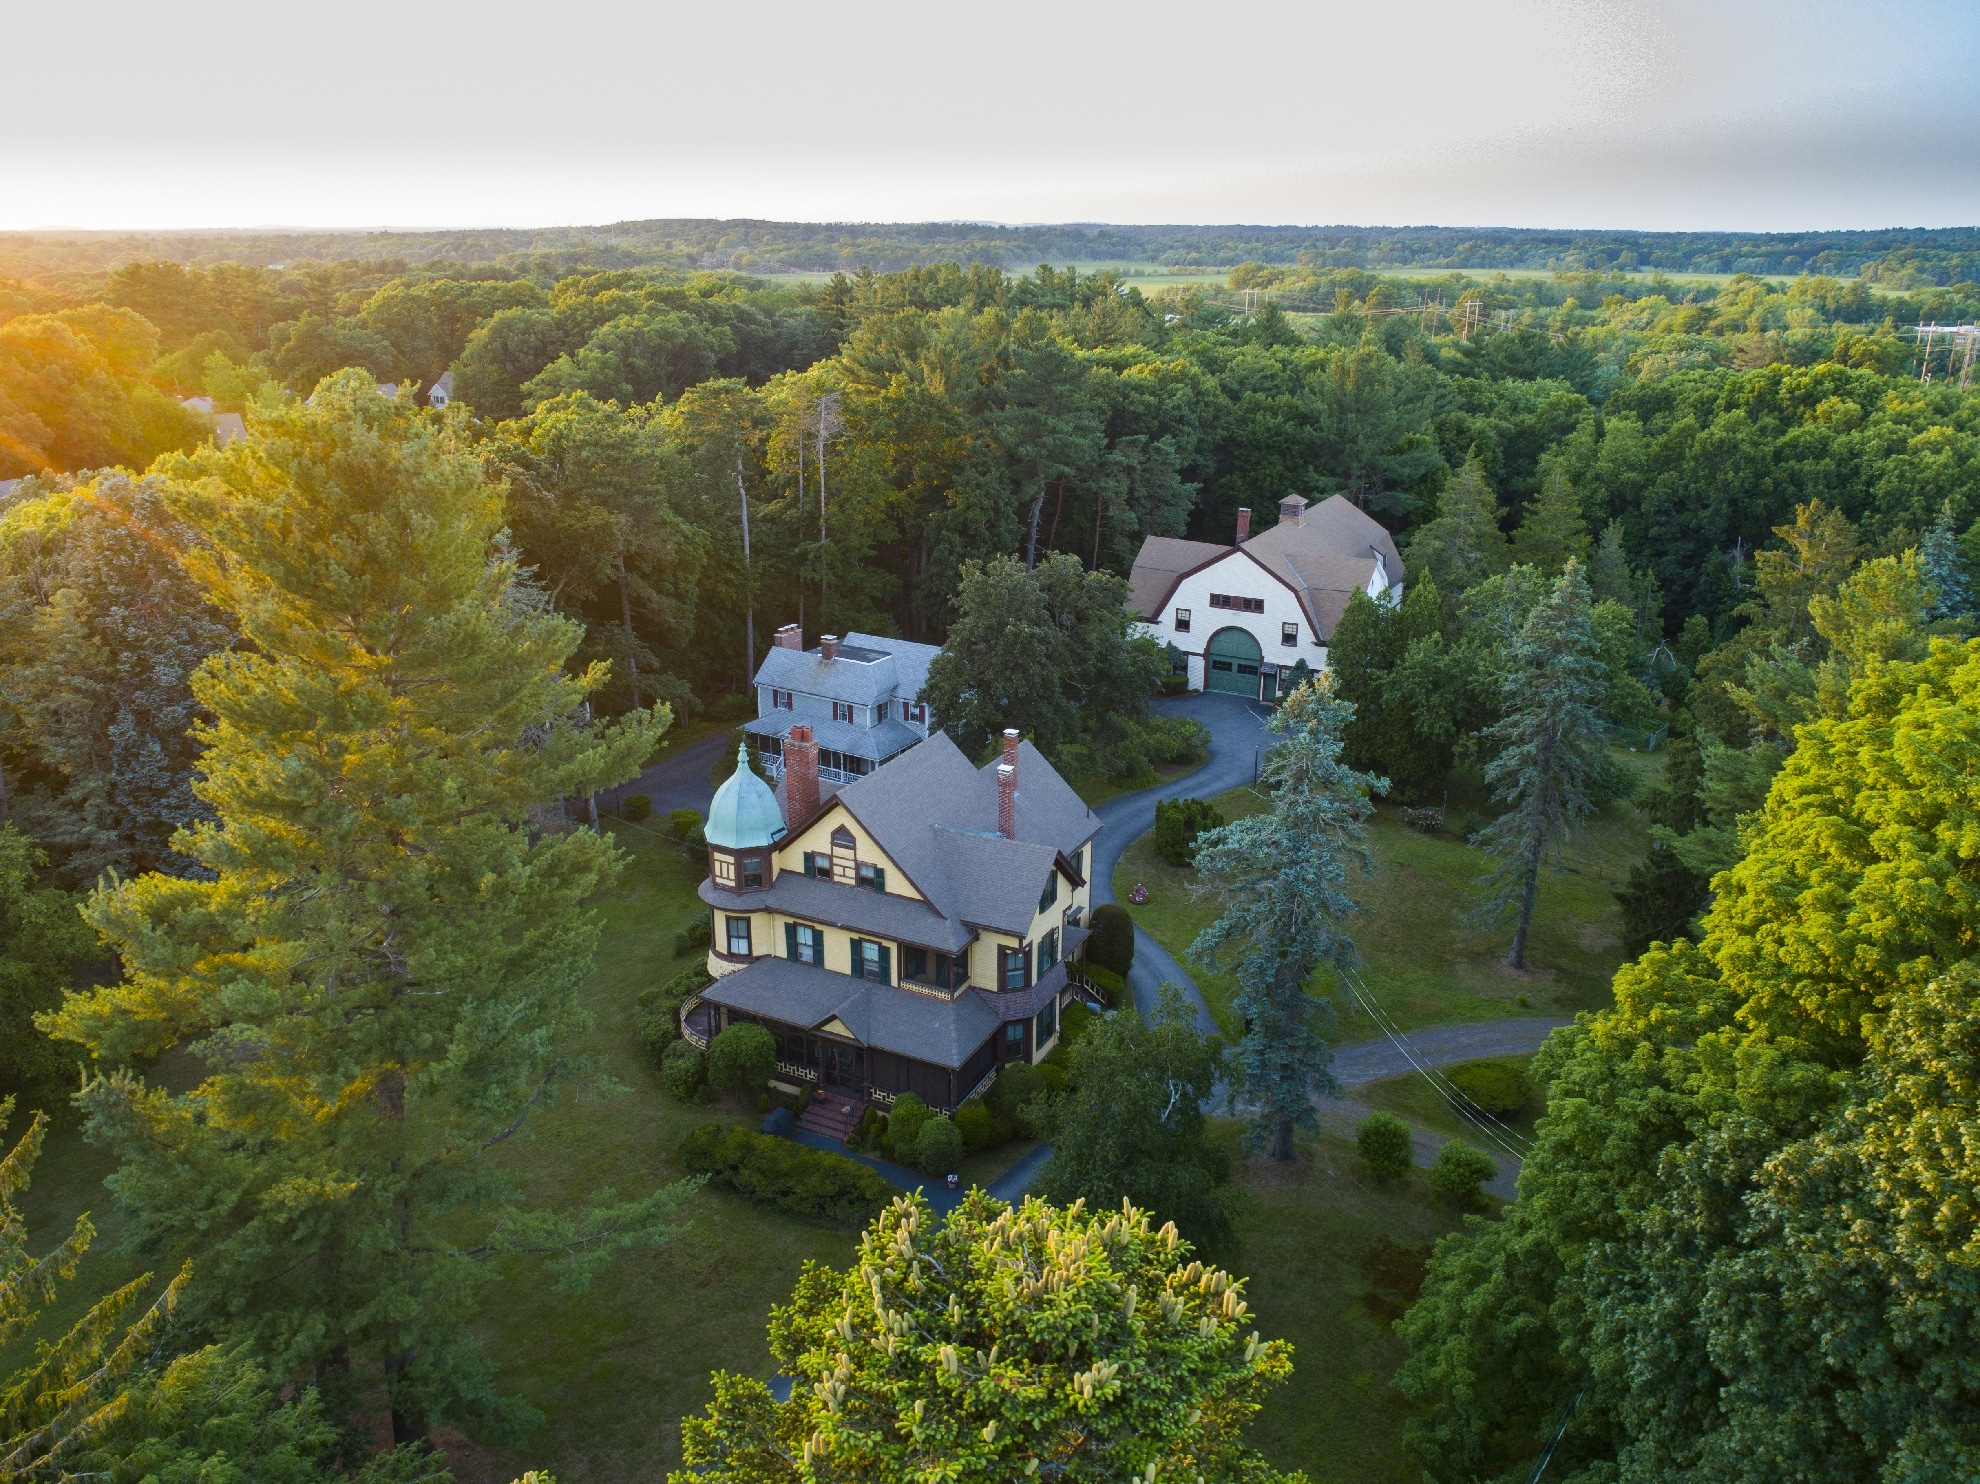 Drone Photograph of Home at sunset in Wakefield Massachusetts